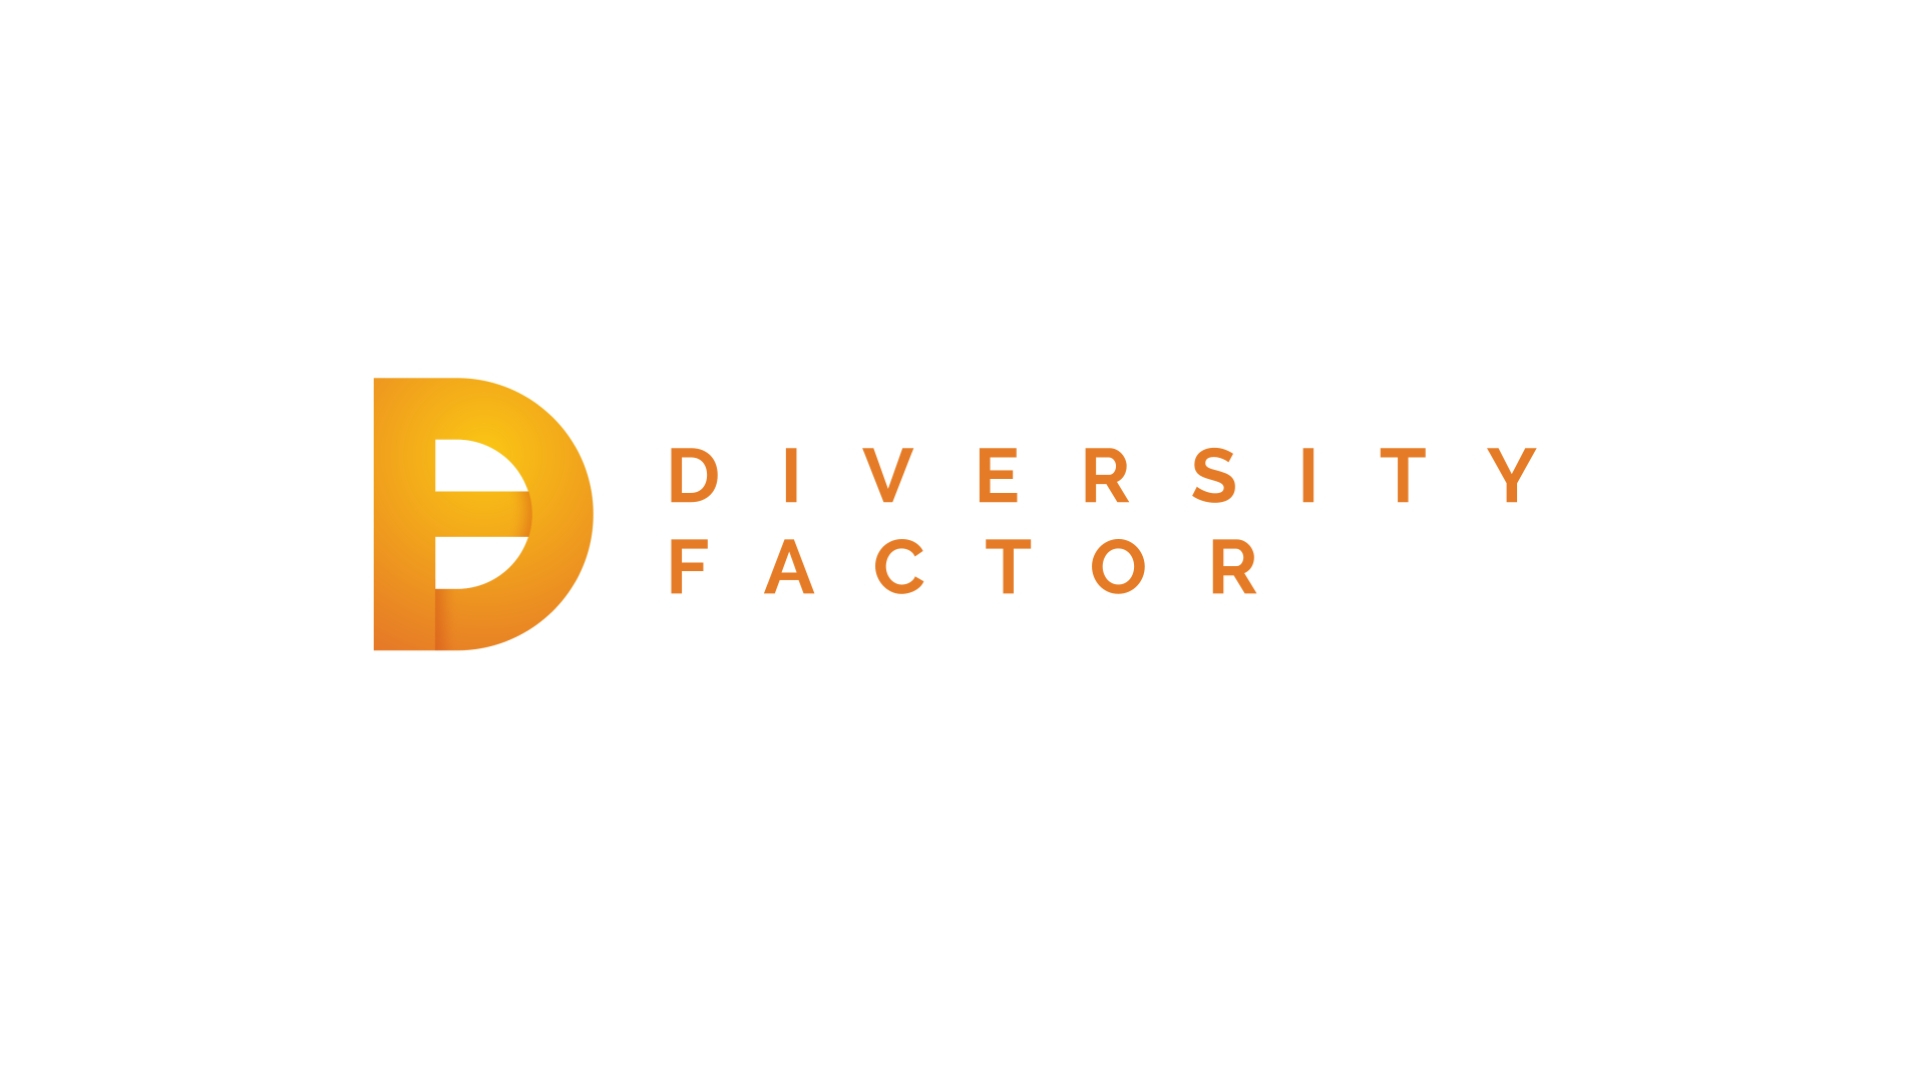 Diversity Factor is committed to capturing the stories of organizations who point to their diversity and inclusion as their strength.